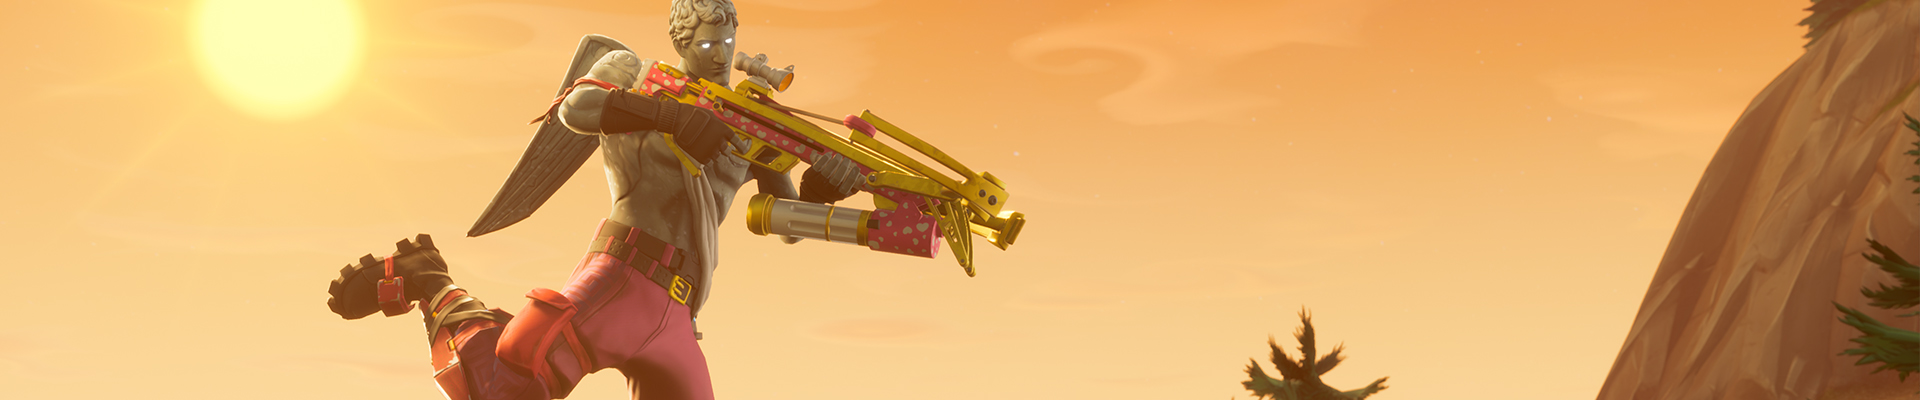 fortnite patch notes - photo #32